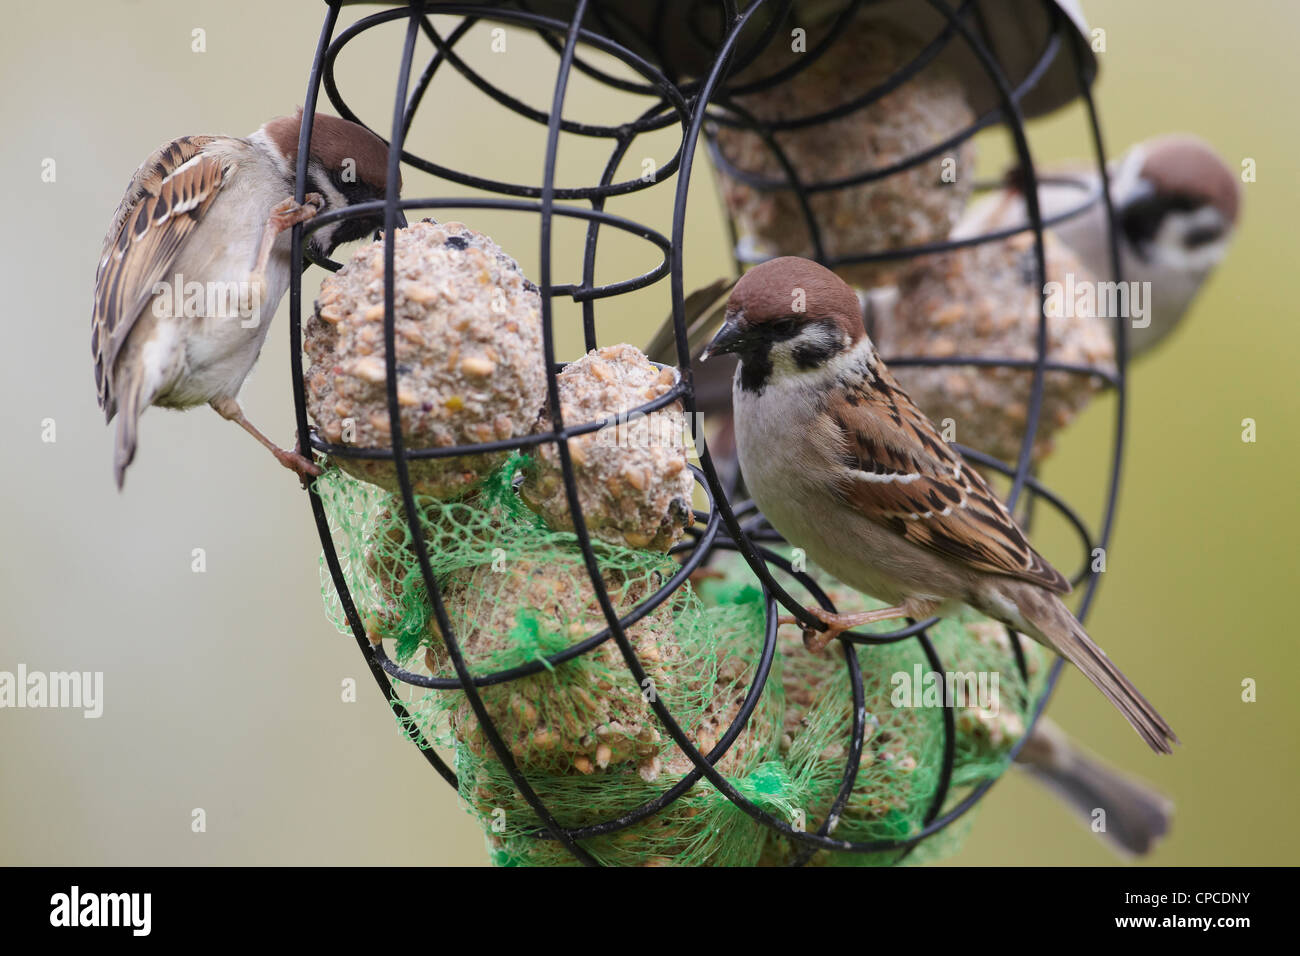 Eurasian Tree Sparrow, Passer montanus, on bird feeder East Yorkshire, UK - Stock Image